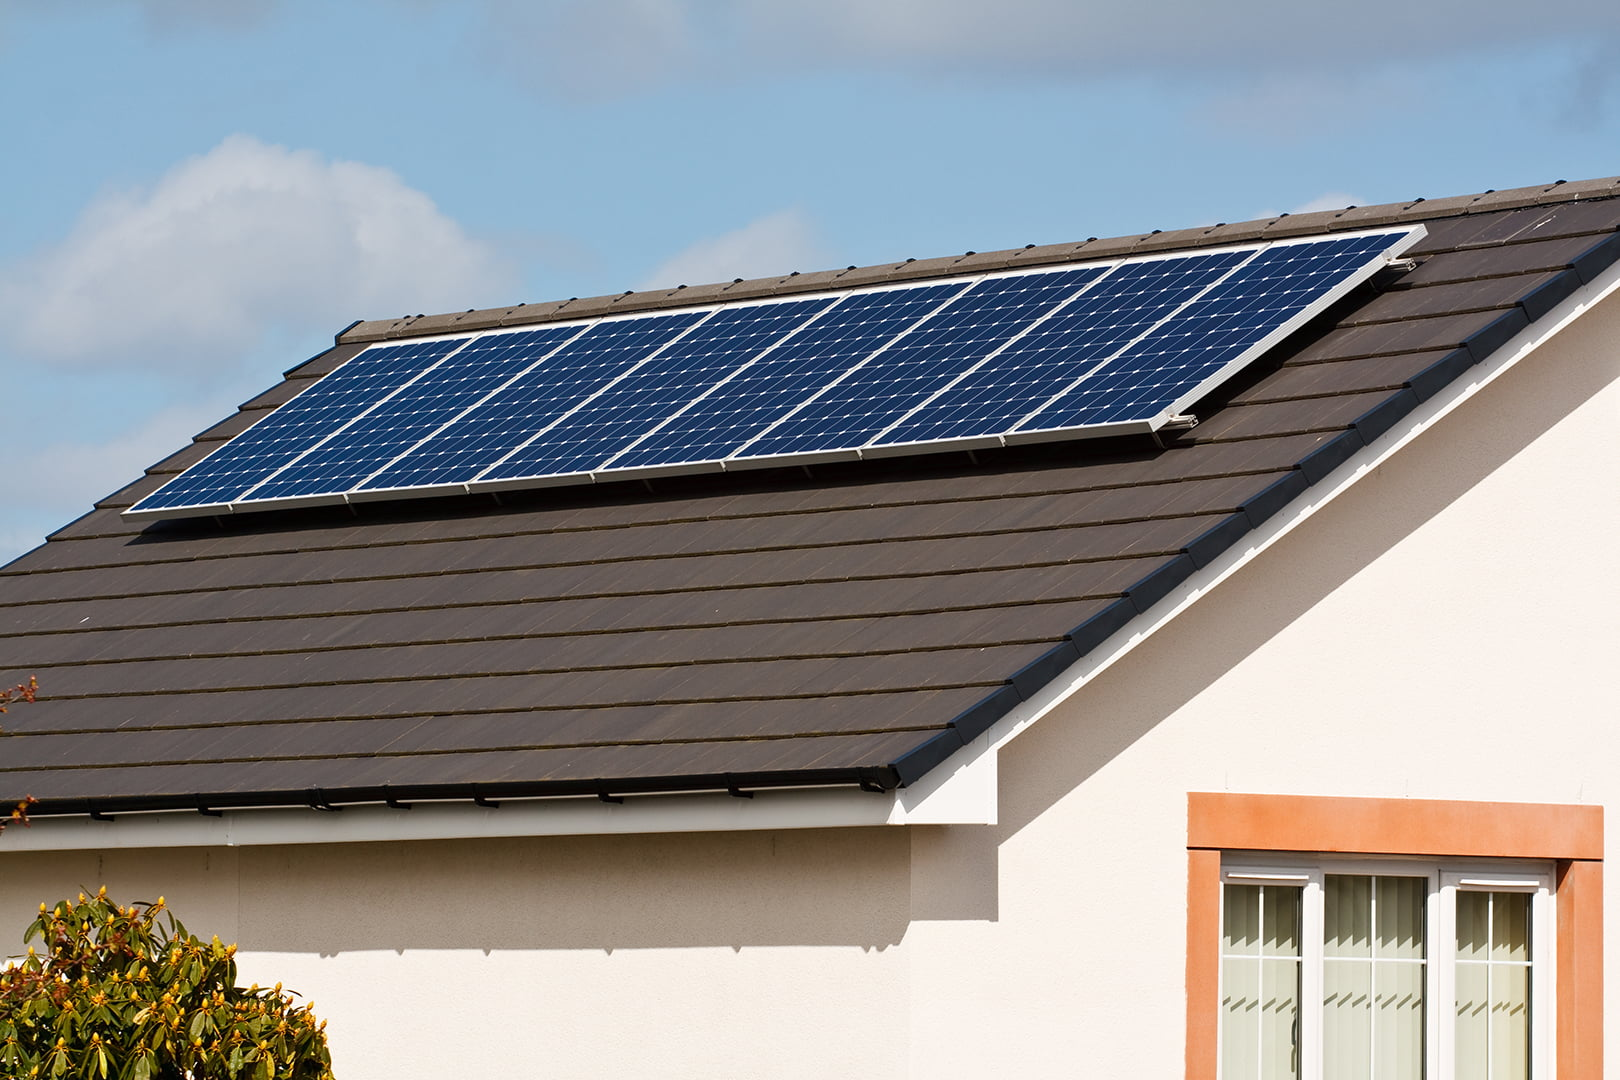 Photovoltaic Solar Energy panels Mounted on a new tile roof